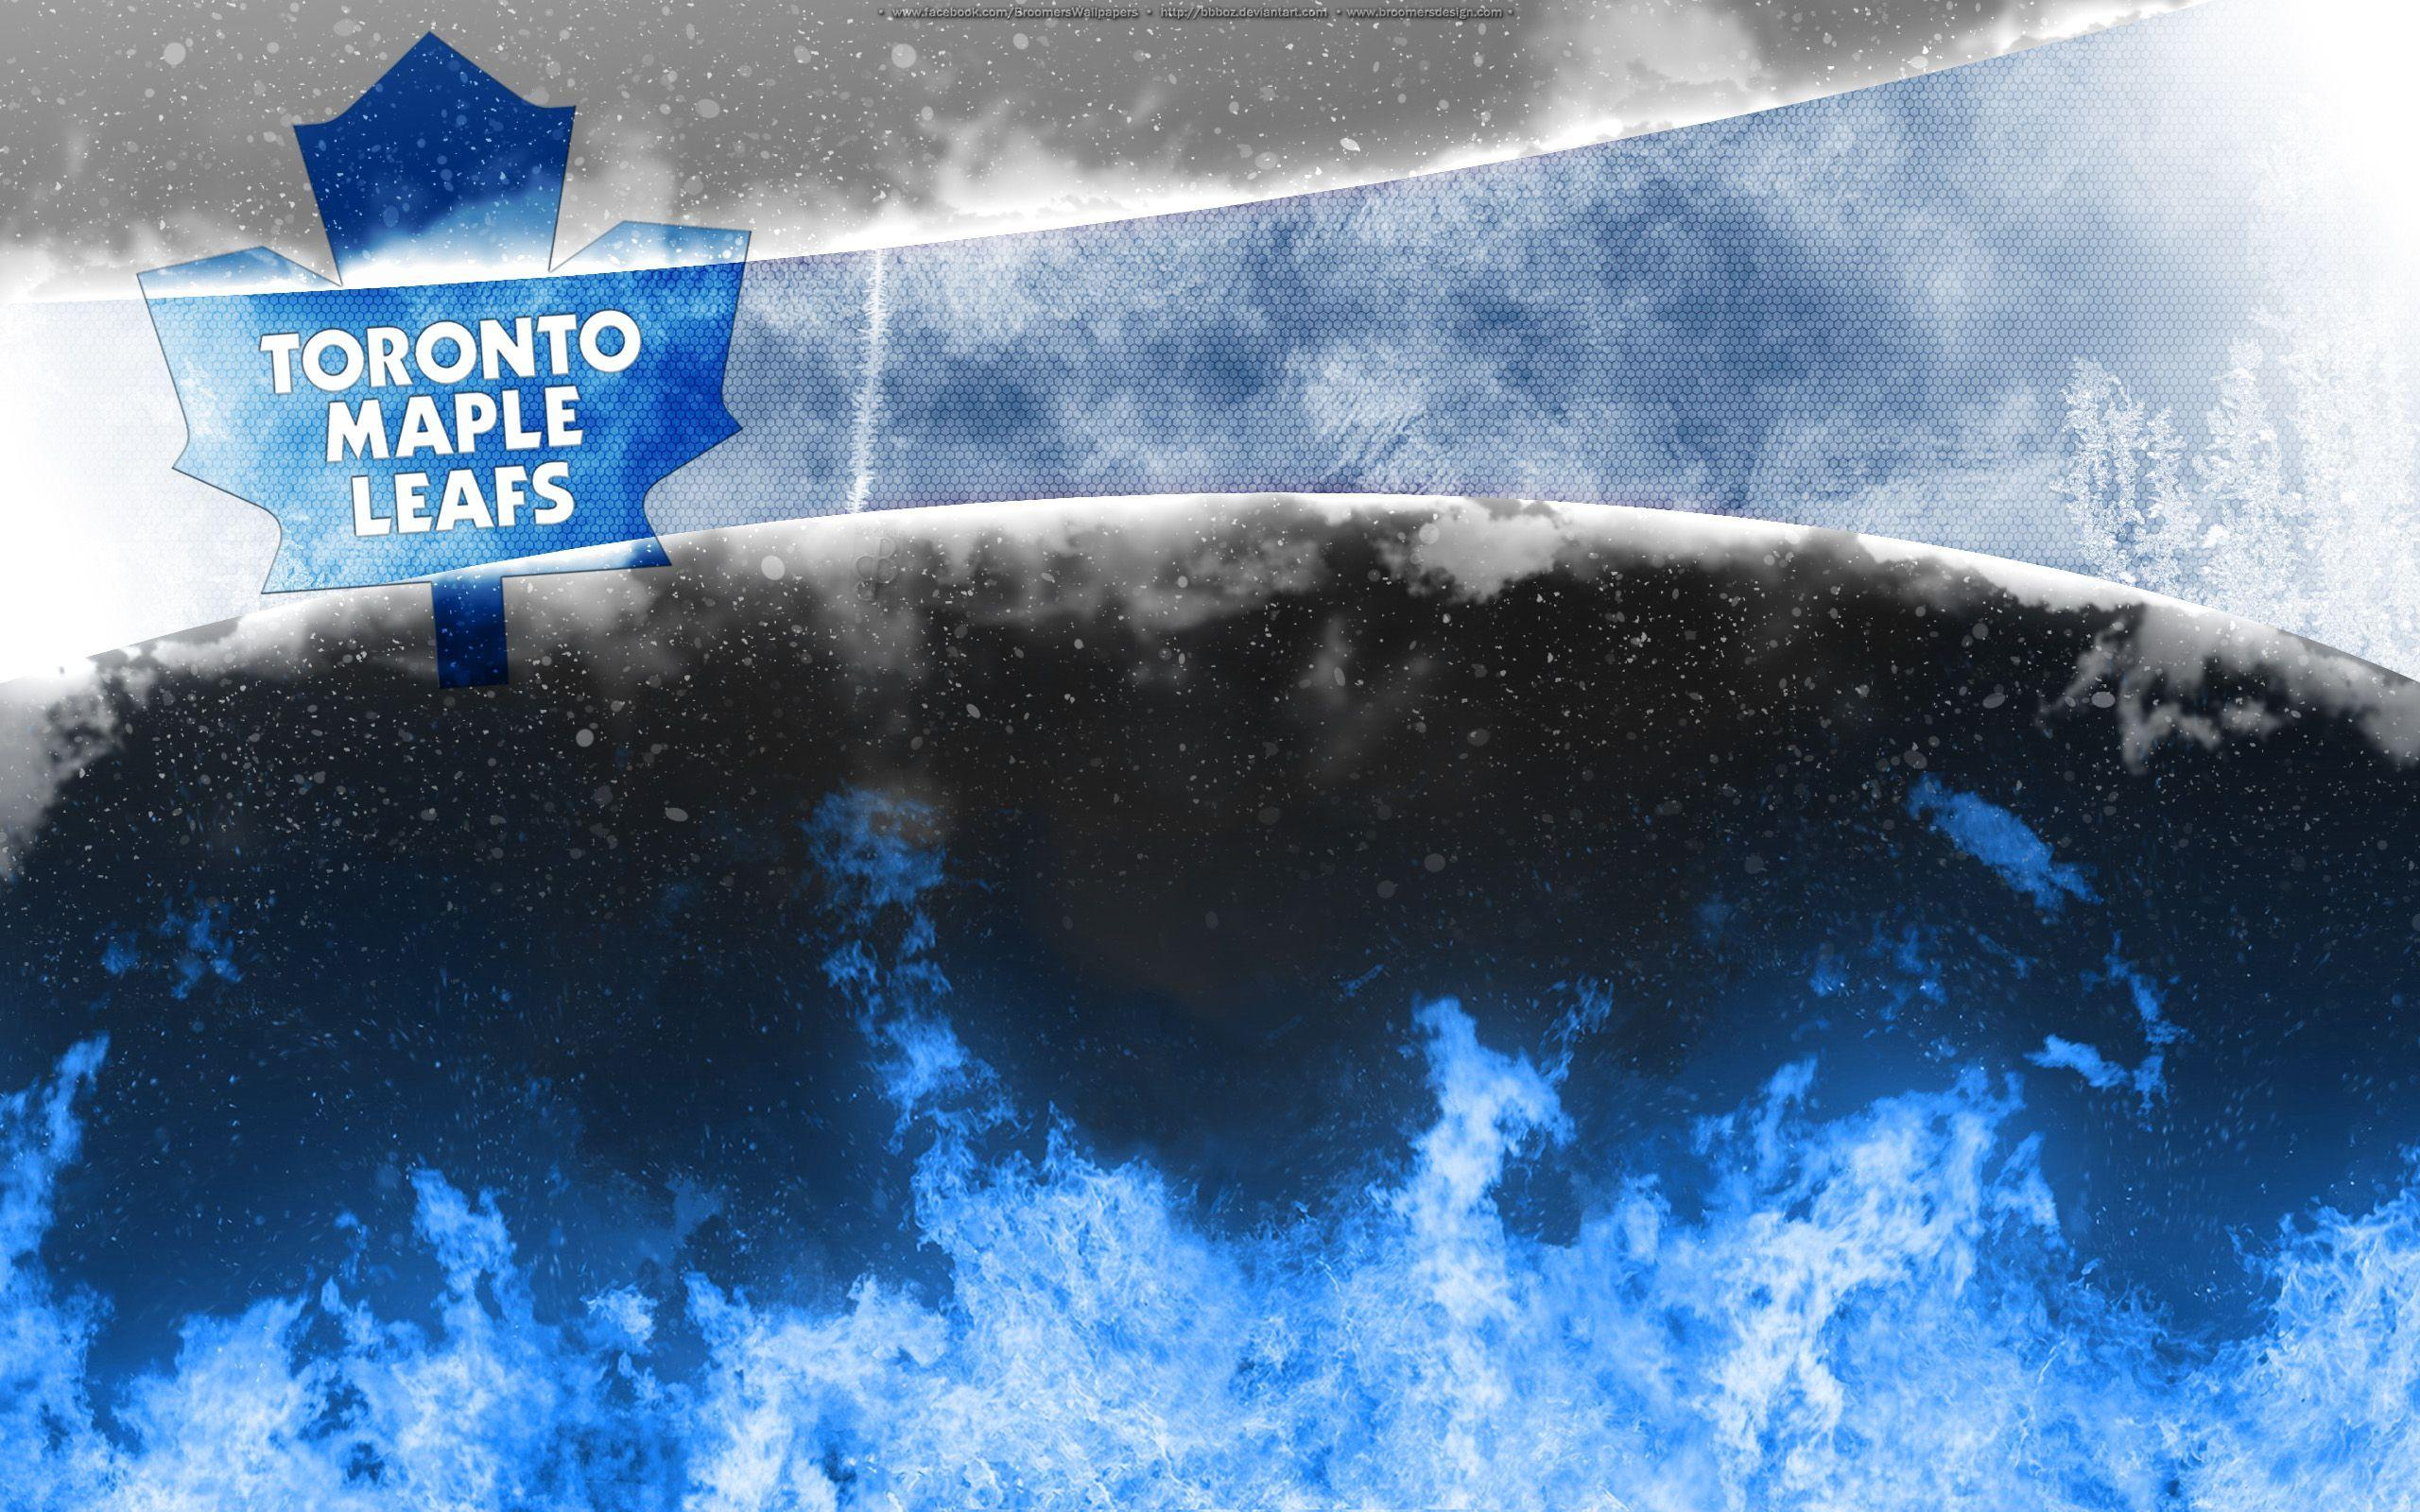 Toronto Maple Leafs 2016 Wallpapers